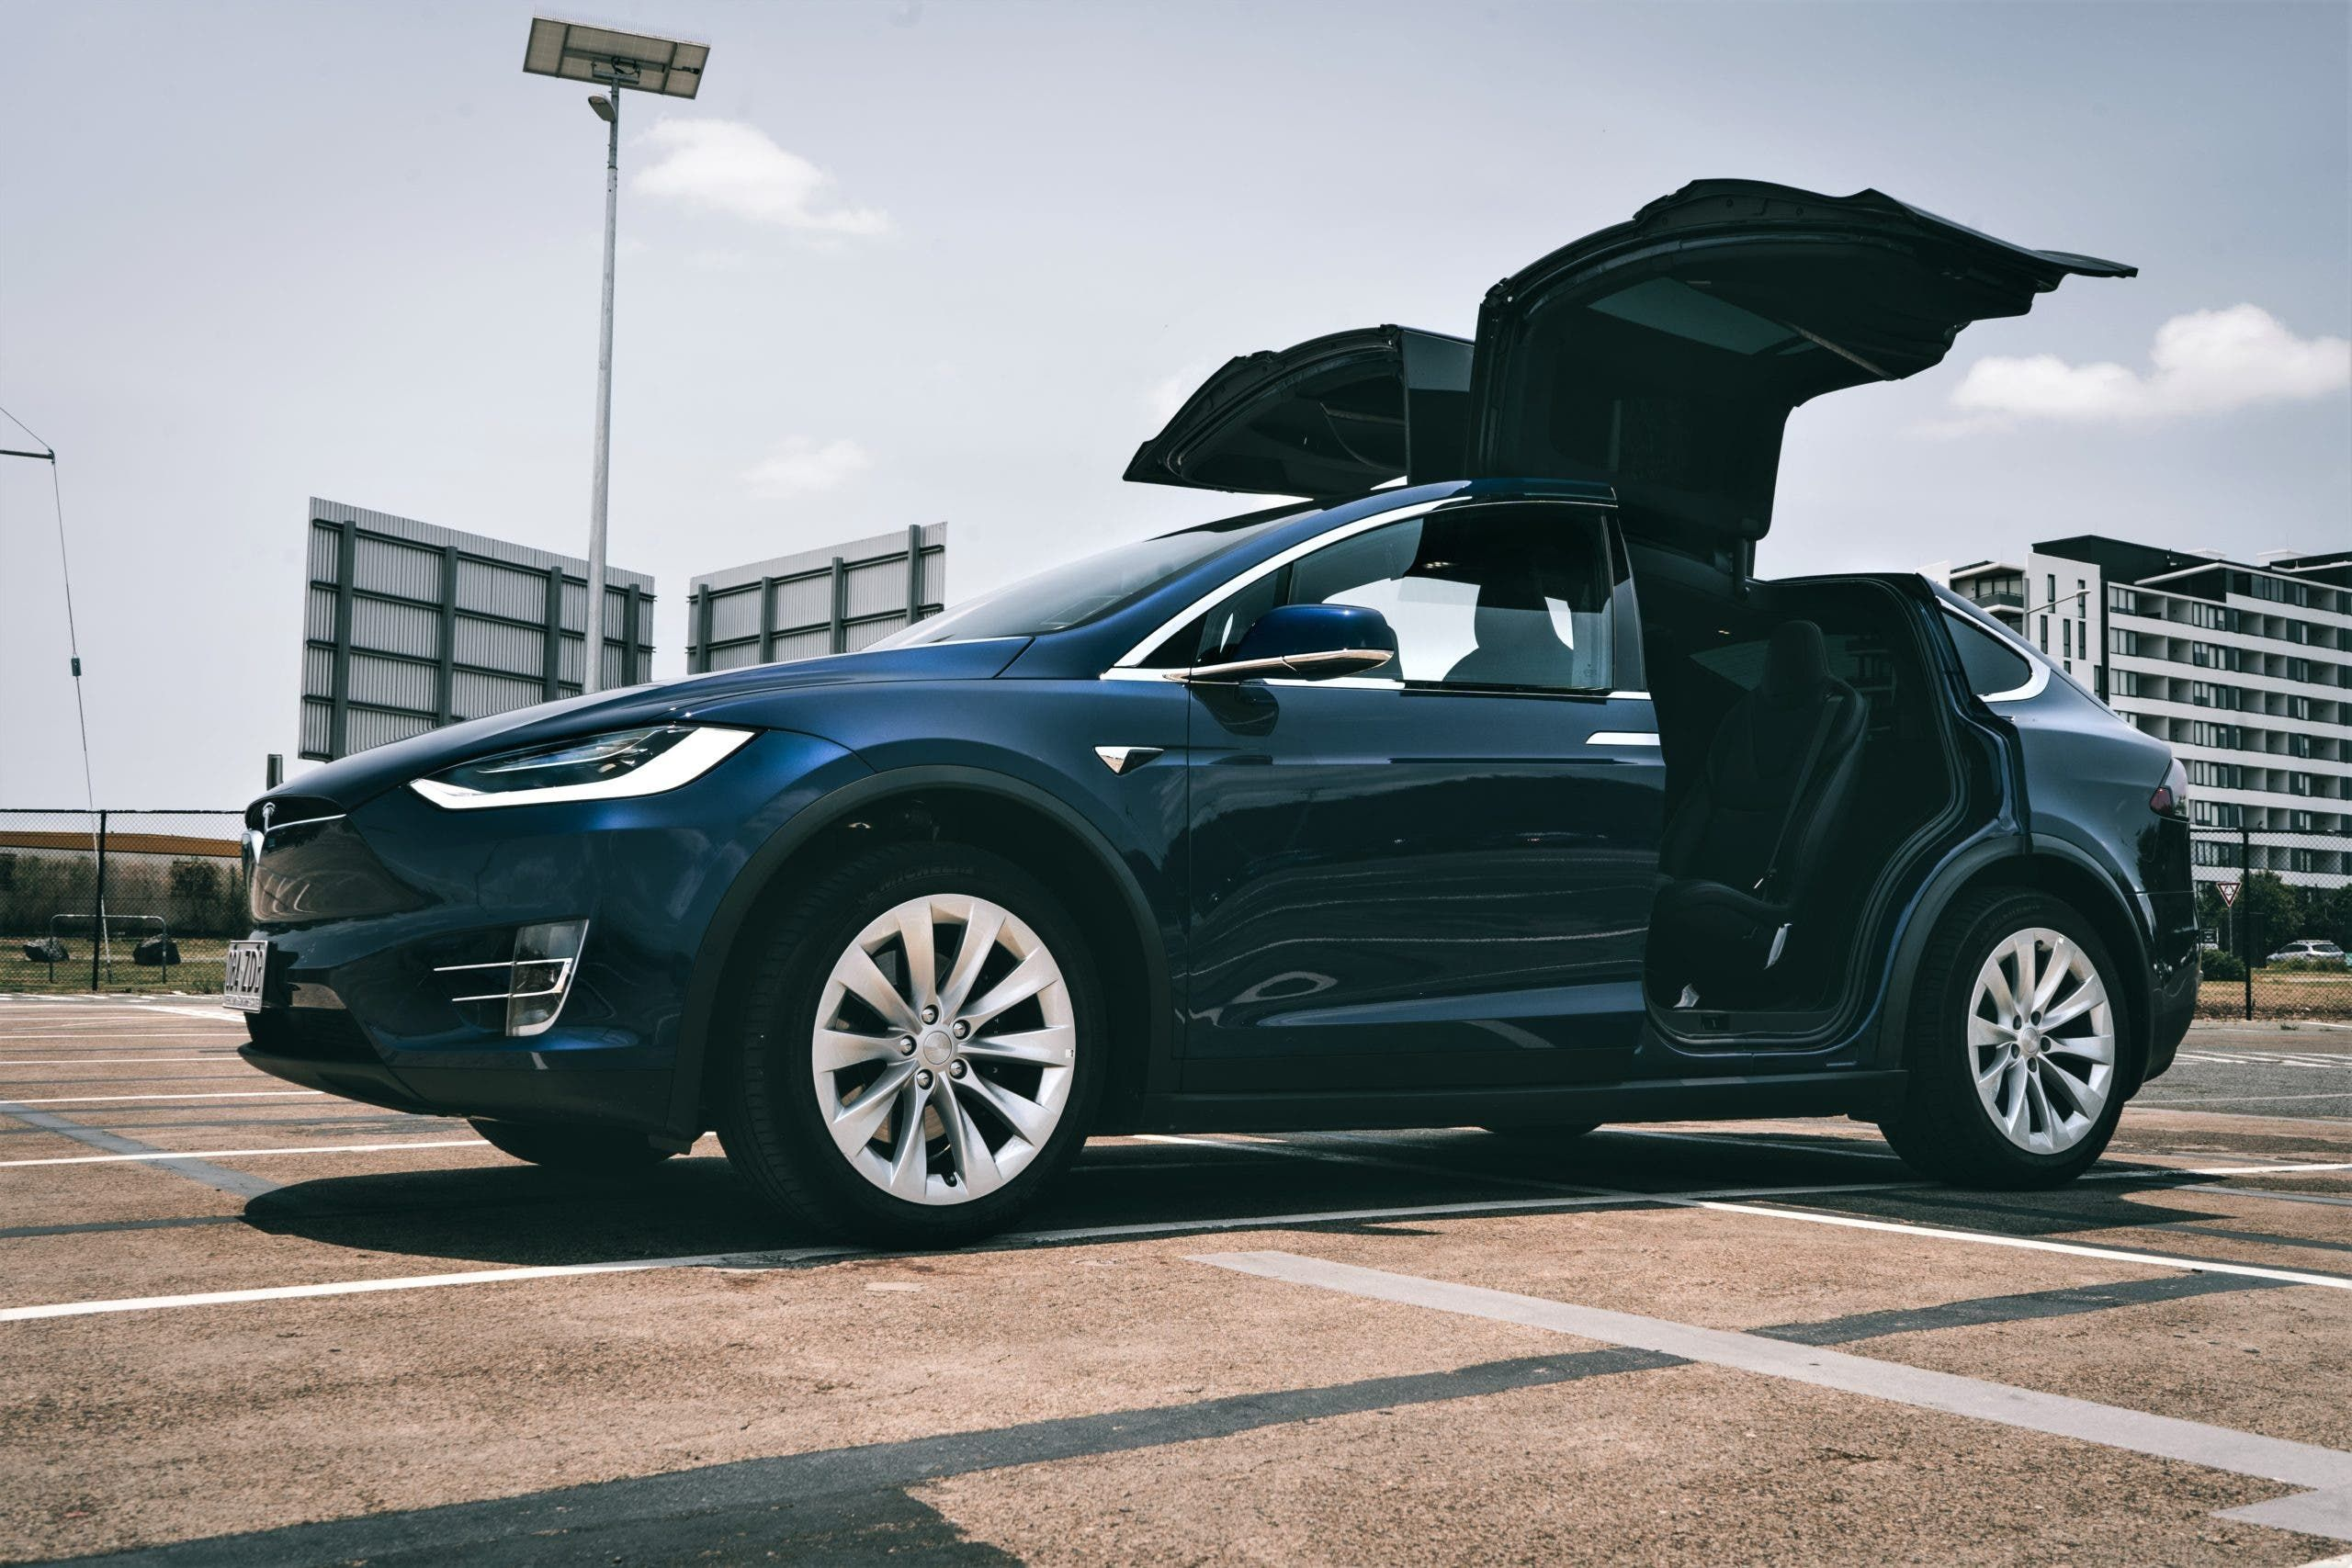 Tesla Taxi Australia Looks To Scale Its Platform For Managed Fleets Of Rideshare Rental Cars Cleantechnica Https Cleantechnica C Car Rental Rideshare Fleet